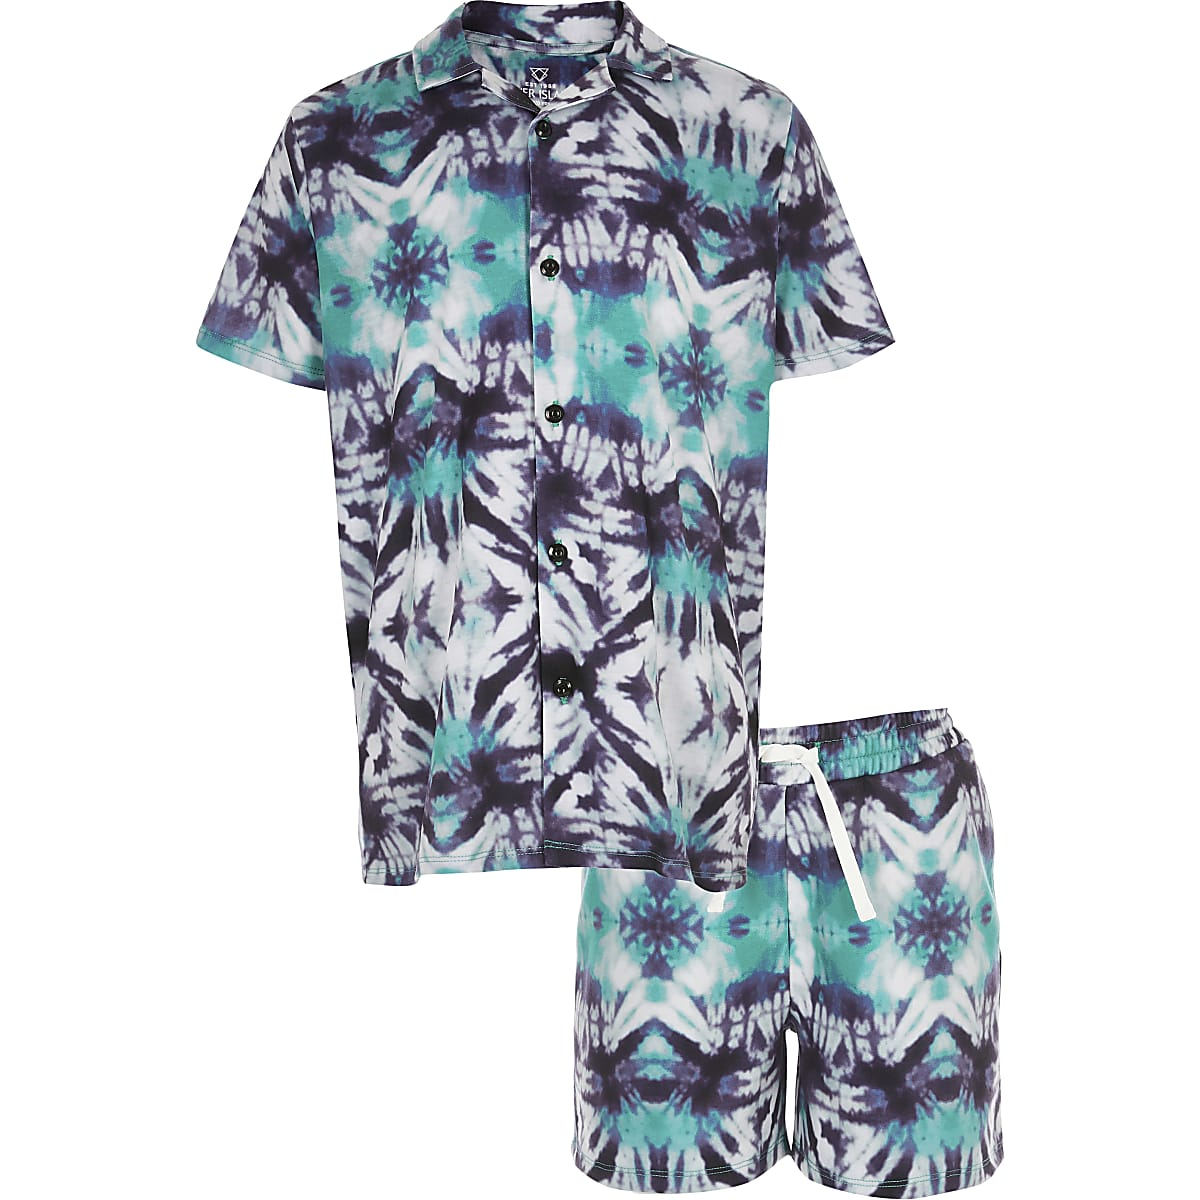 Boys purple tie dye shirt and short outfit